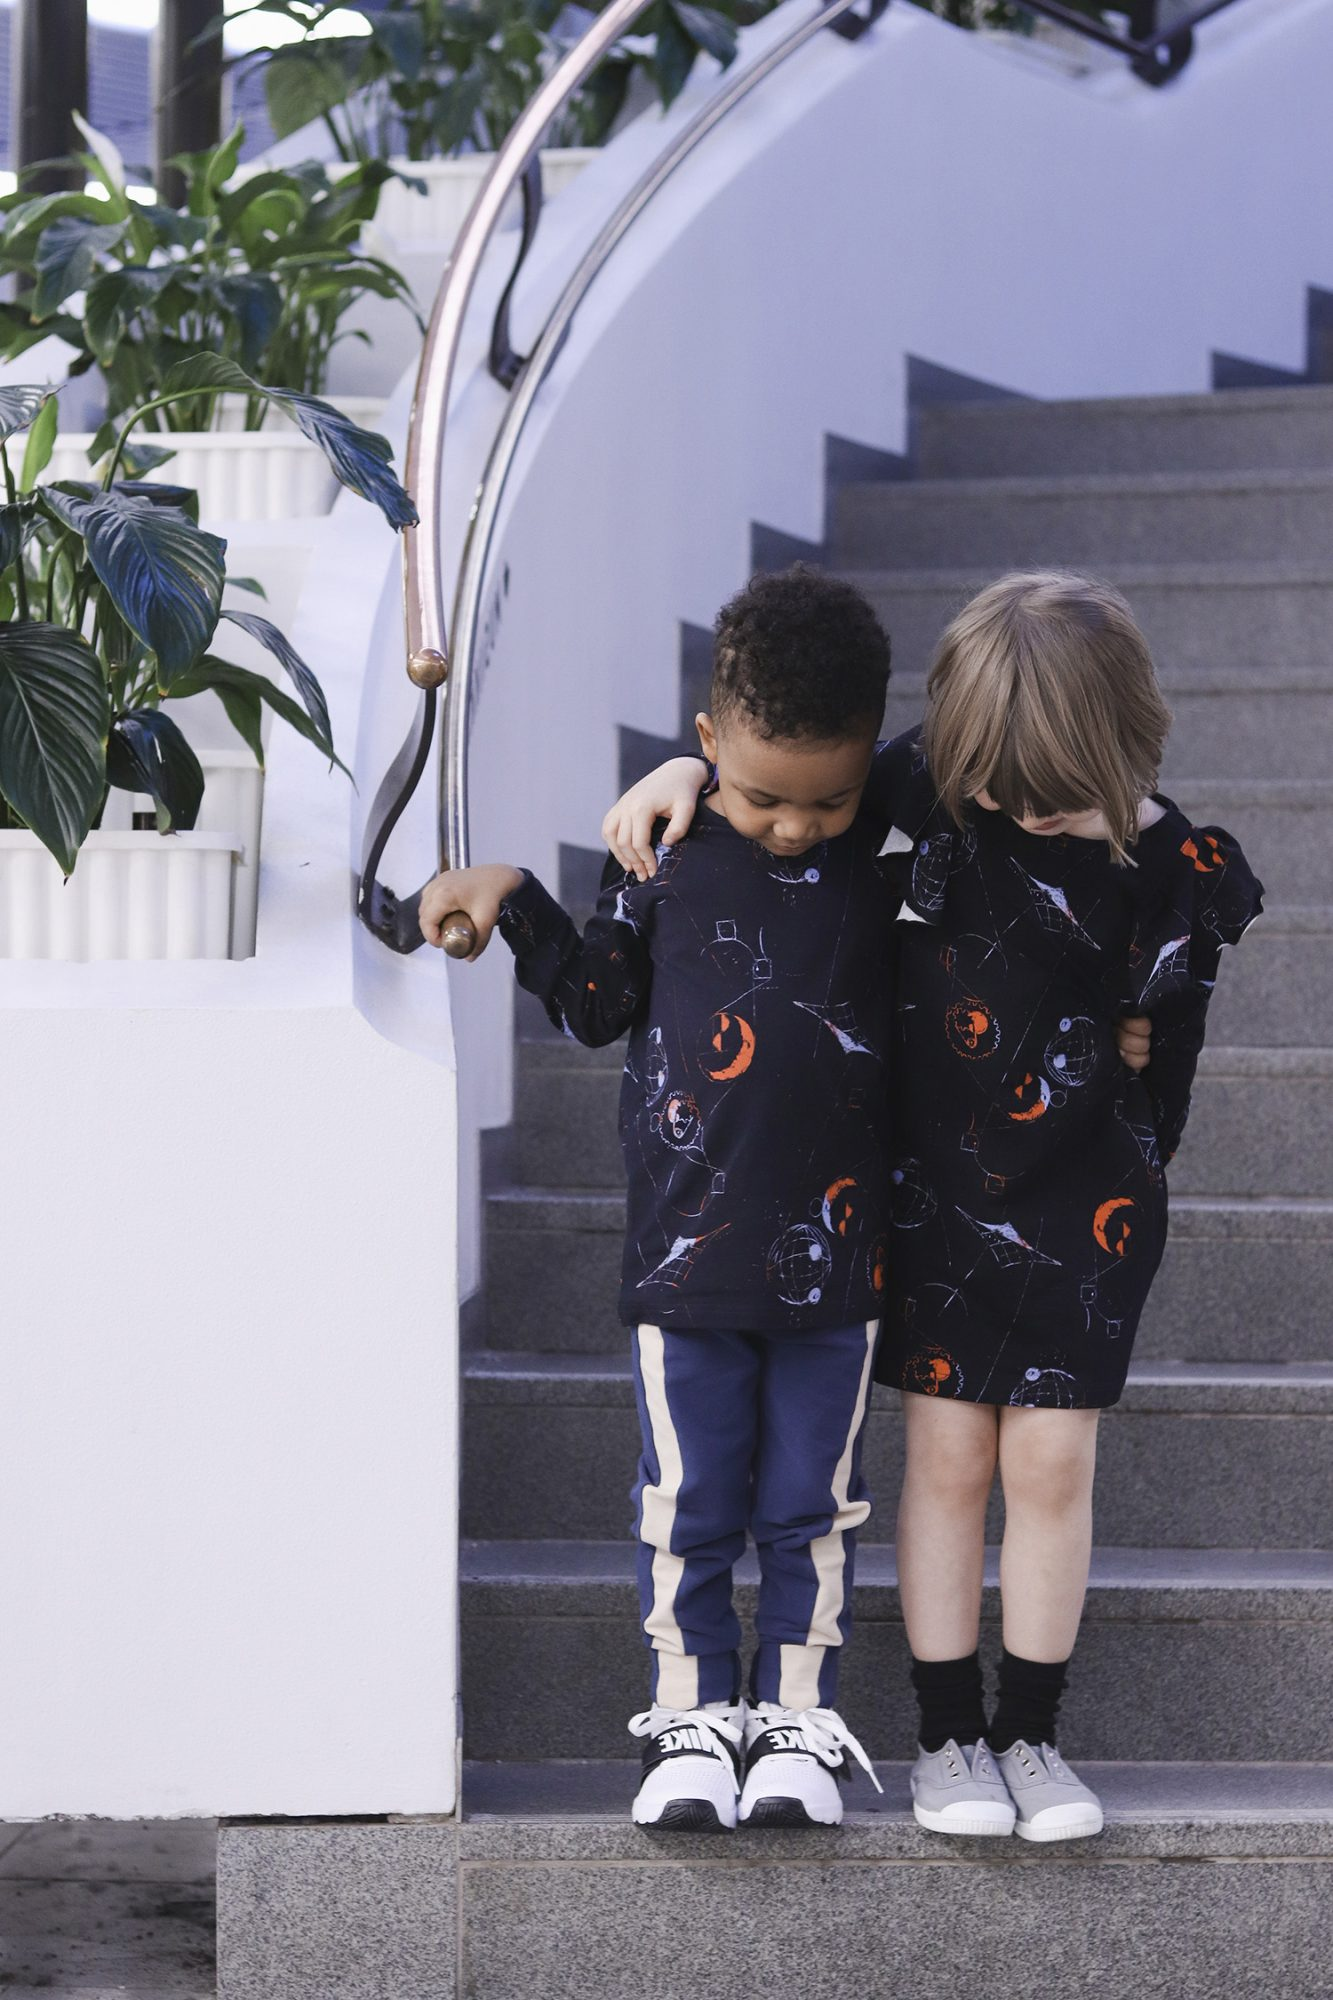 aarrekid_little_stranger_exploring_in_space_black_lorelai_dress_mekko_longsleeve_shirt_paita) (1)_small